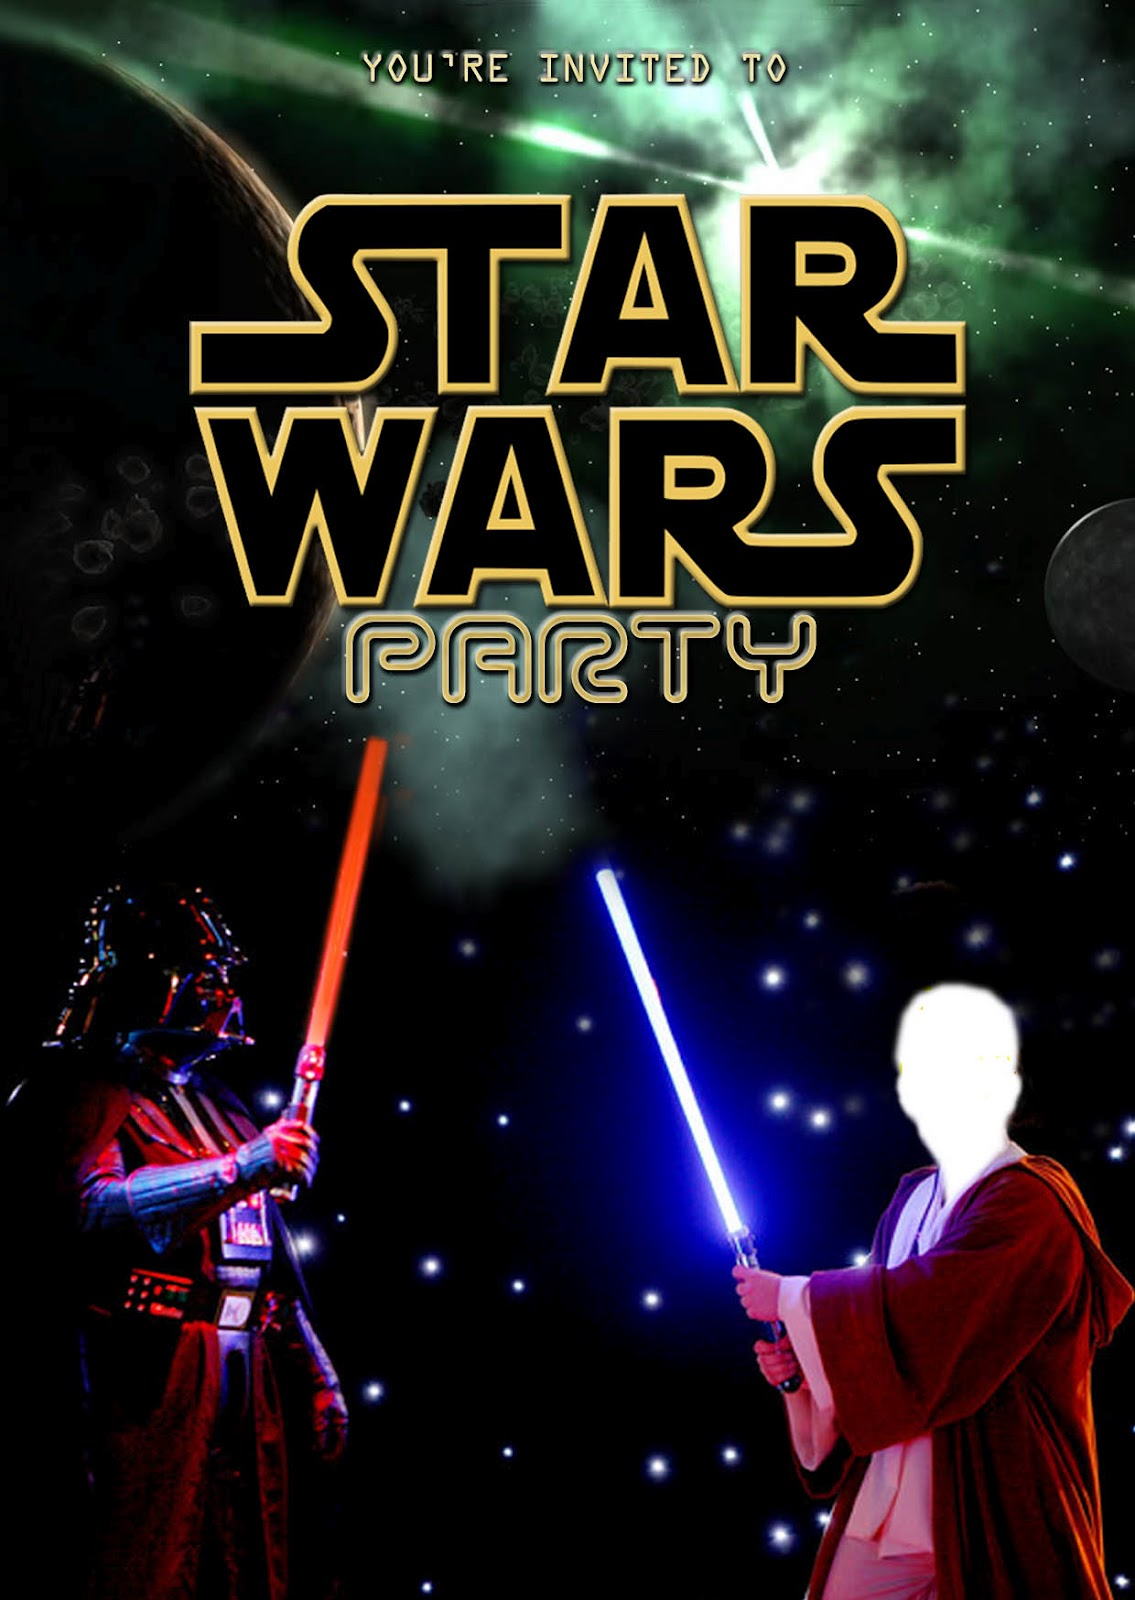 FREE Kids Party Invitations Star Wars Party Invitation selfedit – Online Party Invitations Free